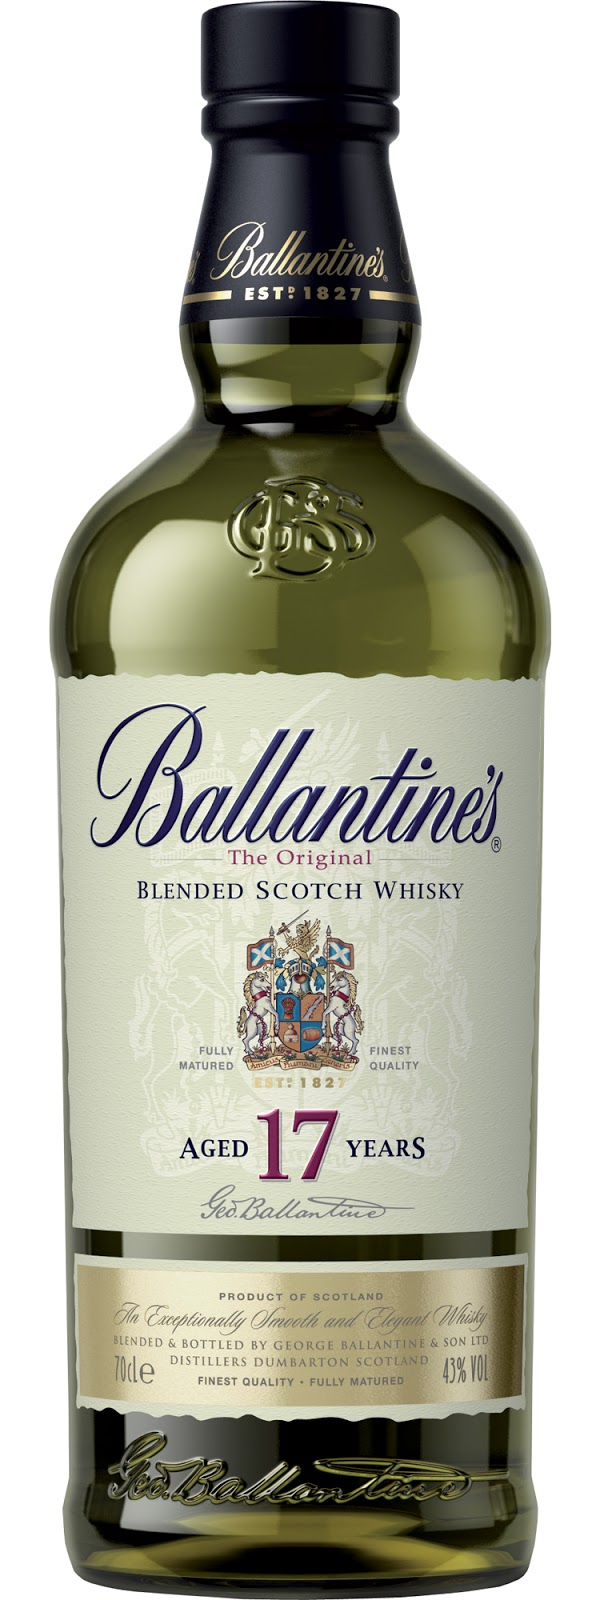 singles in ballantine The eponymous blend of the ballantine family first made its name in edinburgh in 1827, but has grown into a brand synonymous with scotch whisky across the world.